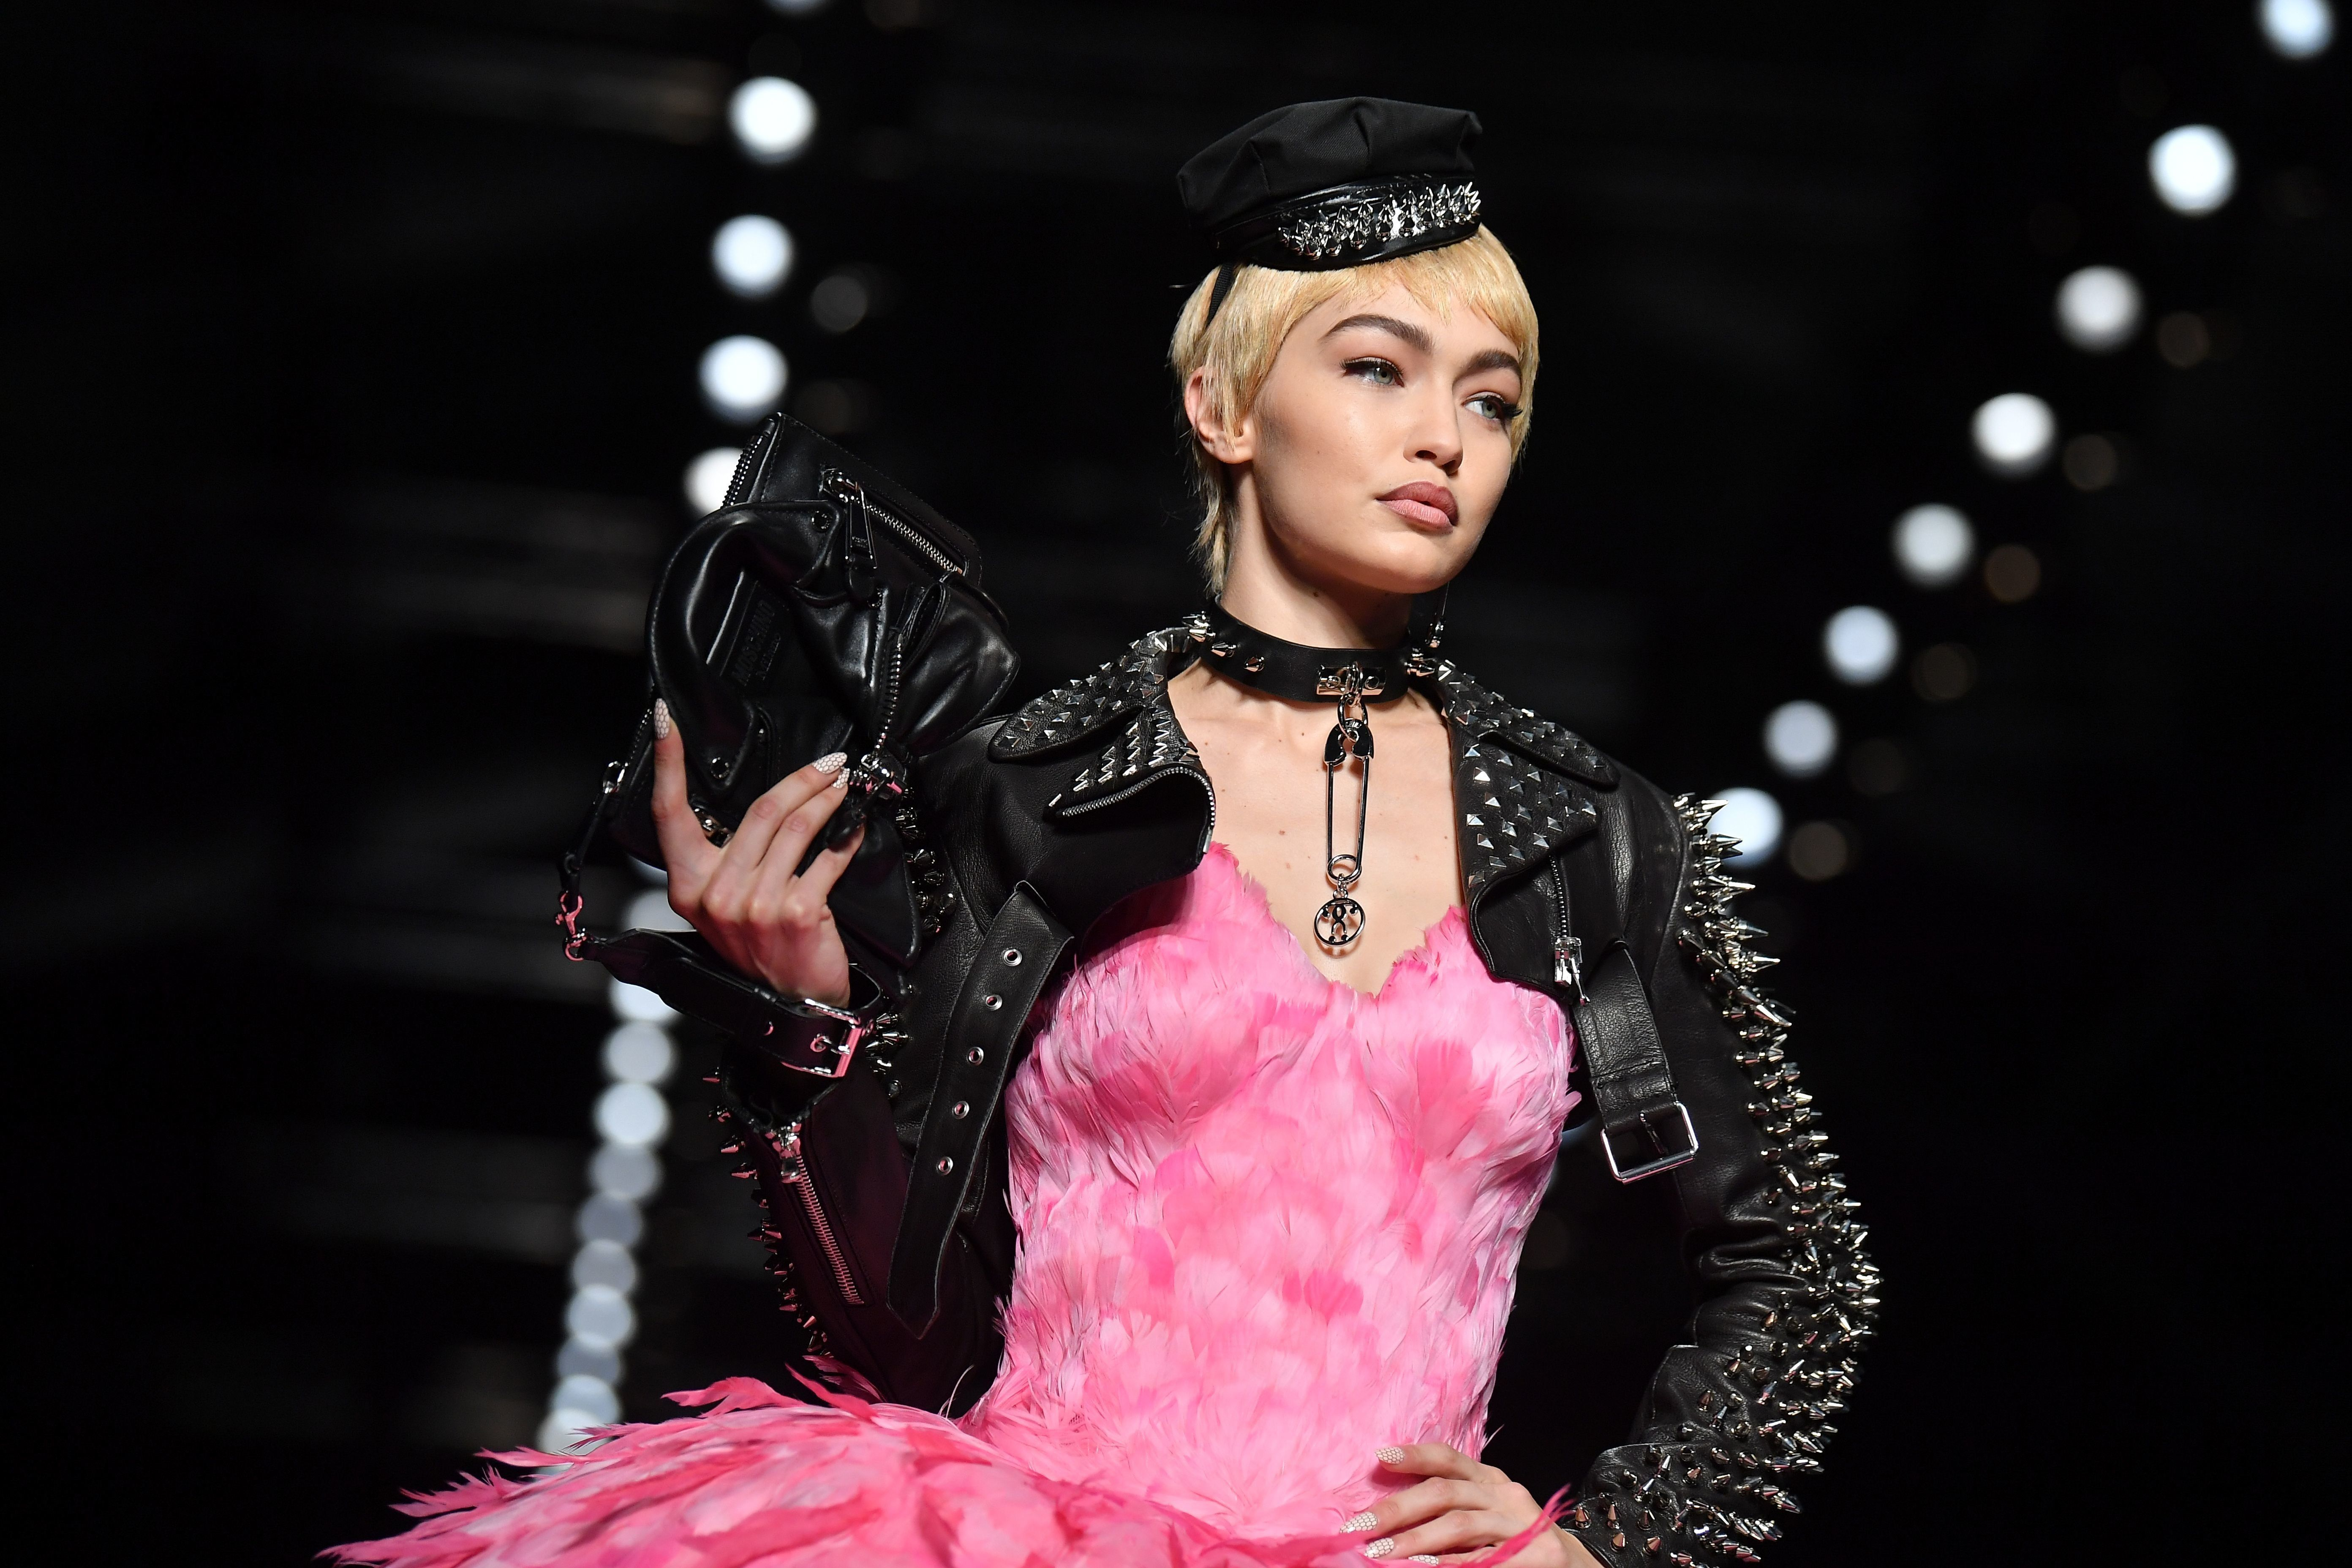 Model Gigi Hadid wears feathers at a Moschino runway show in September2017.